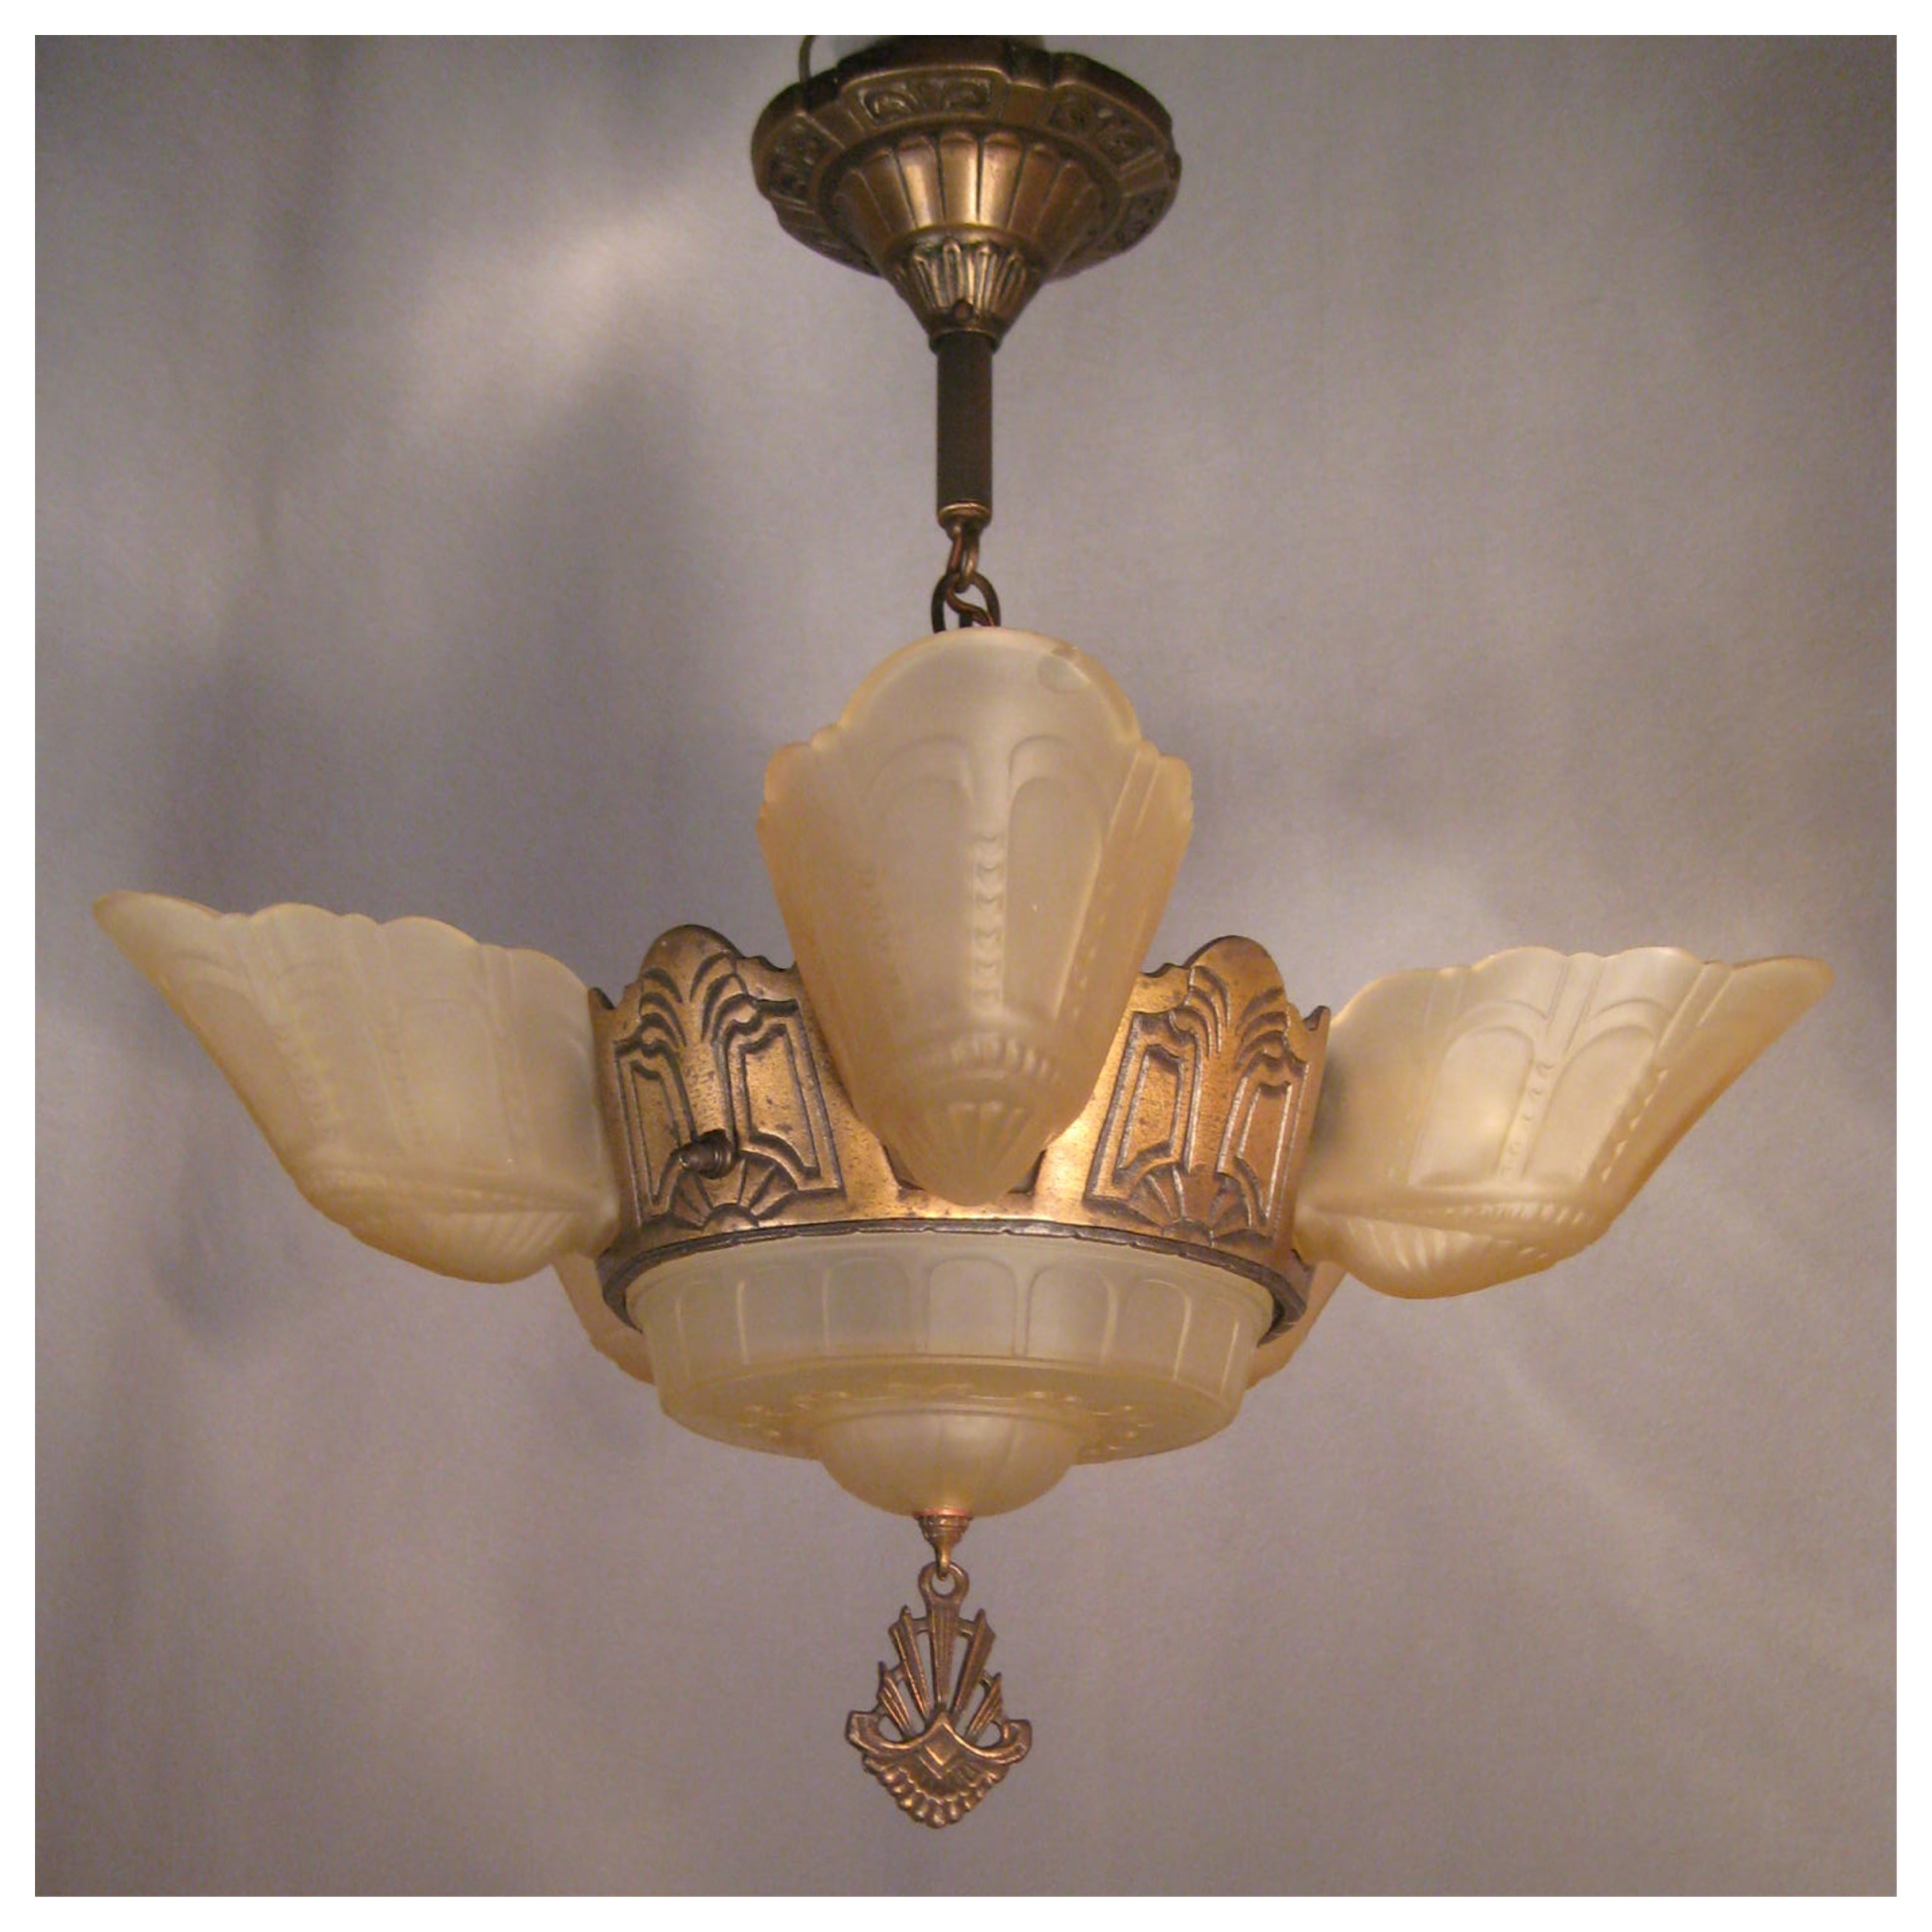 A3647 art deco bronze chandelier with shades bogart bremmer a3647 art deco bronze chandelier arubaitofo Gallery